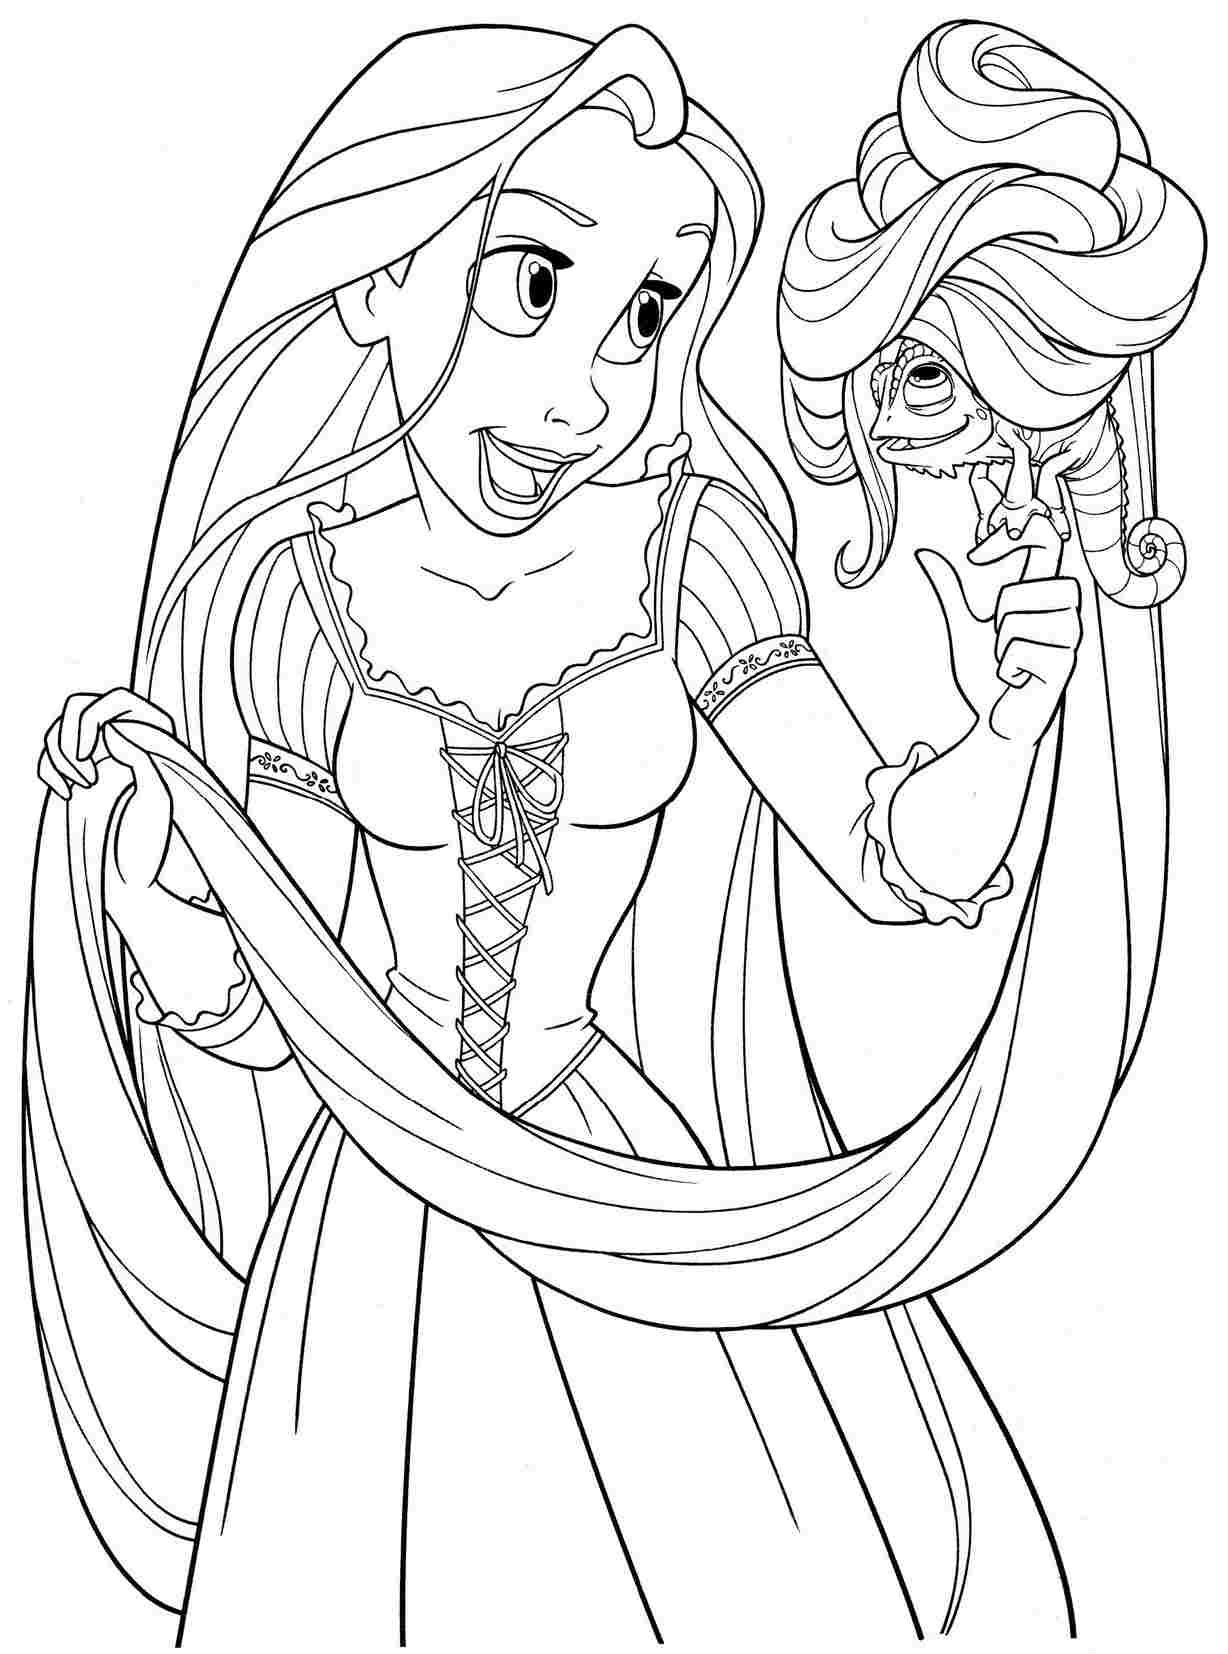 Coloring pages disney printable - Printable Free Colouring Pages Disney Princess Rapunzel For Kids Boys